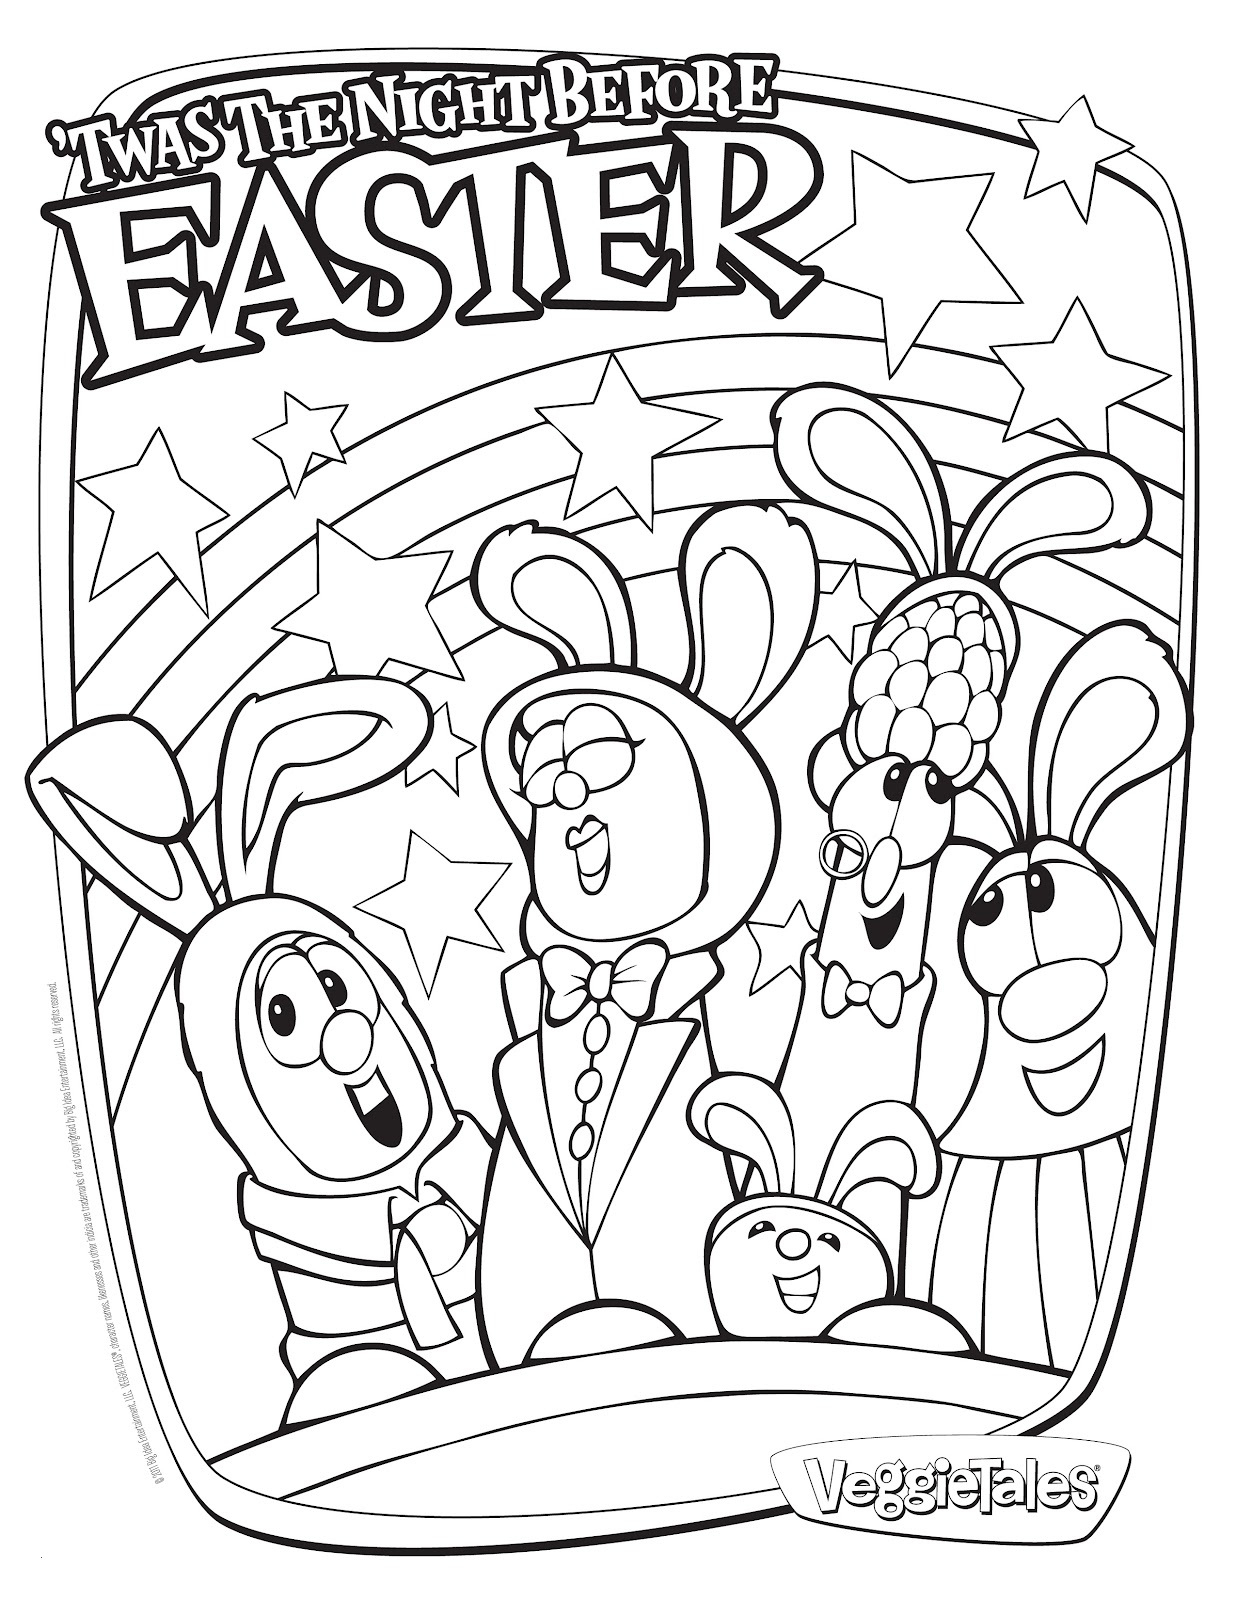 Jesus Loves Children Coloring Pages  Download 18g - Free For Children